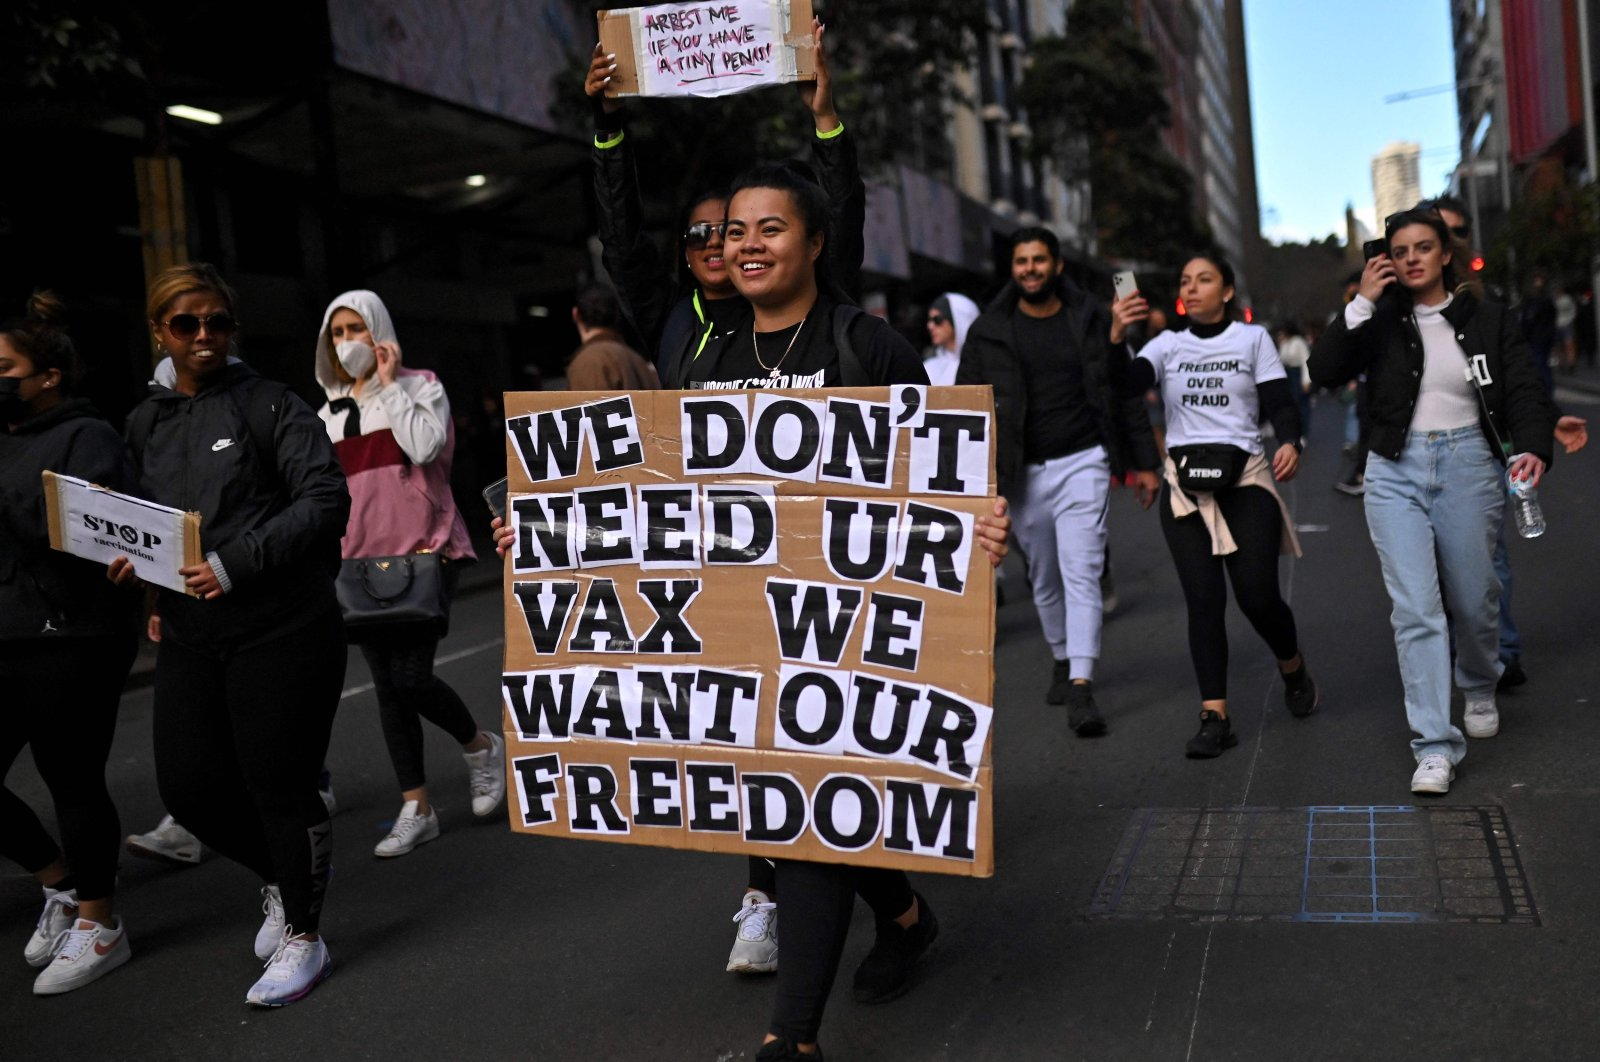 Hundreds of anti-lockdown protestors take to the streets during a rally in Sydney, Australia, July 24, 2021. (AFP Photo)